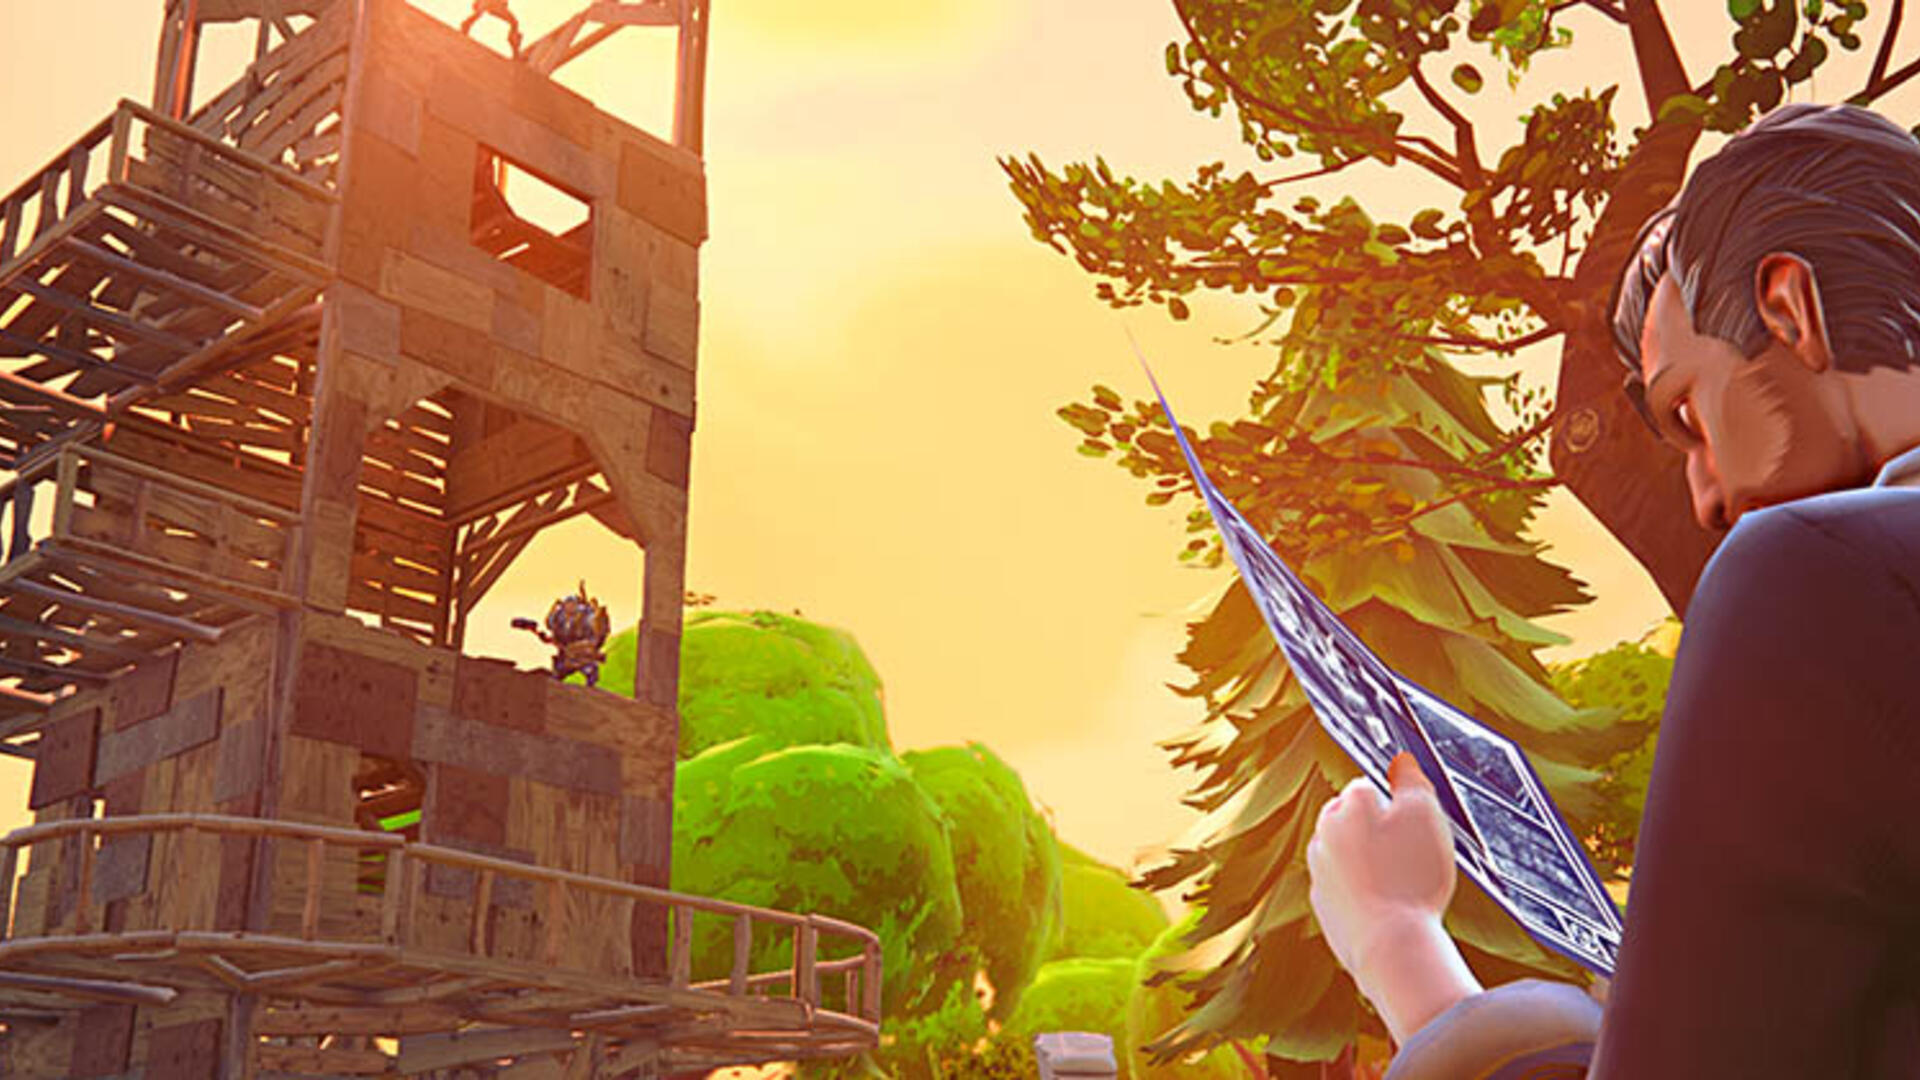 Fortnite Week 6 Challenges Guide - How to Complete All Fortnite Week 6 Challenges